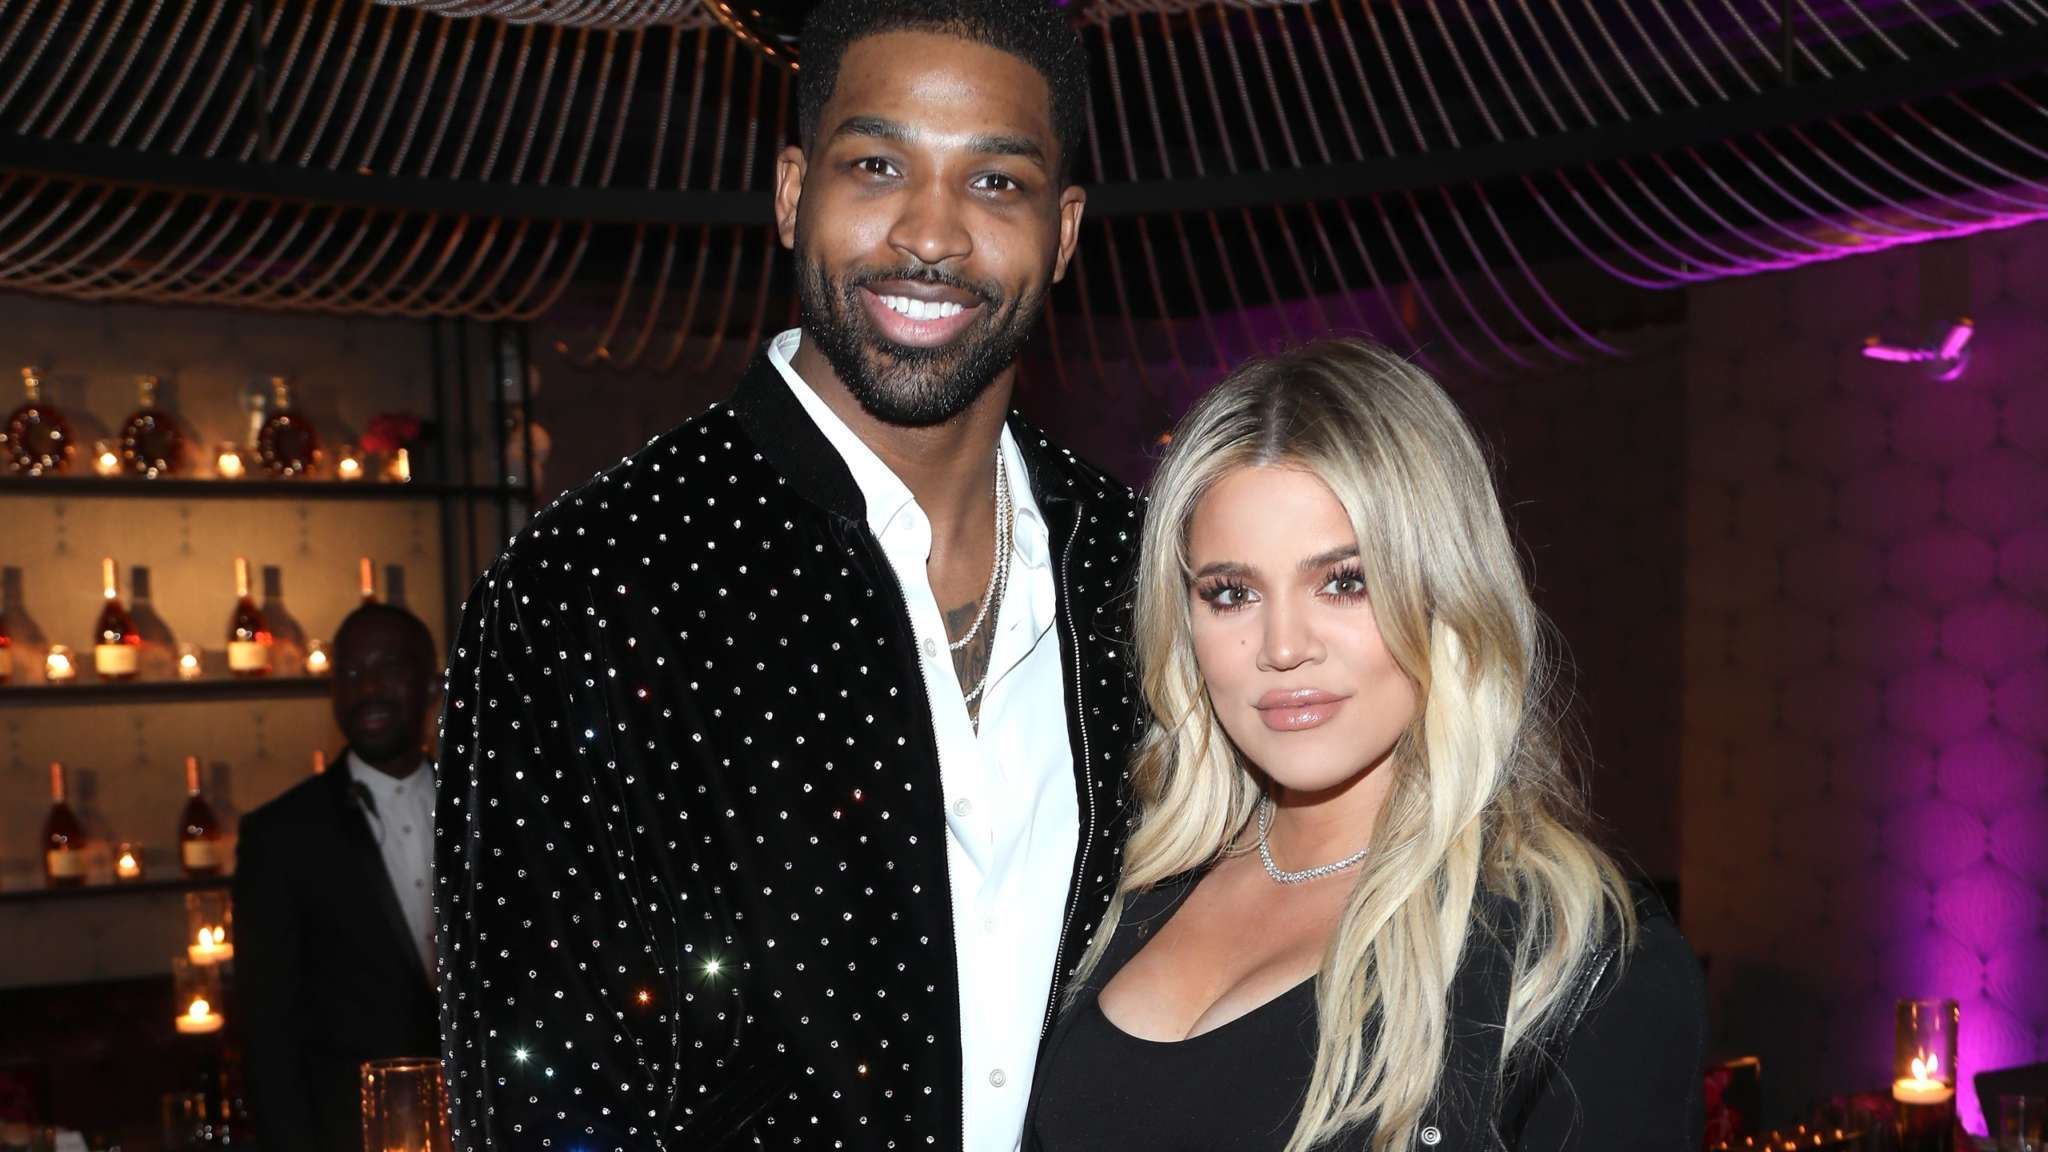 Khloé Kardashian claps back at fans AGAIN following Tristan backlash